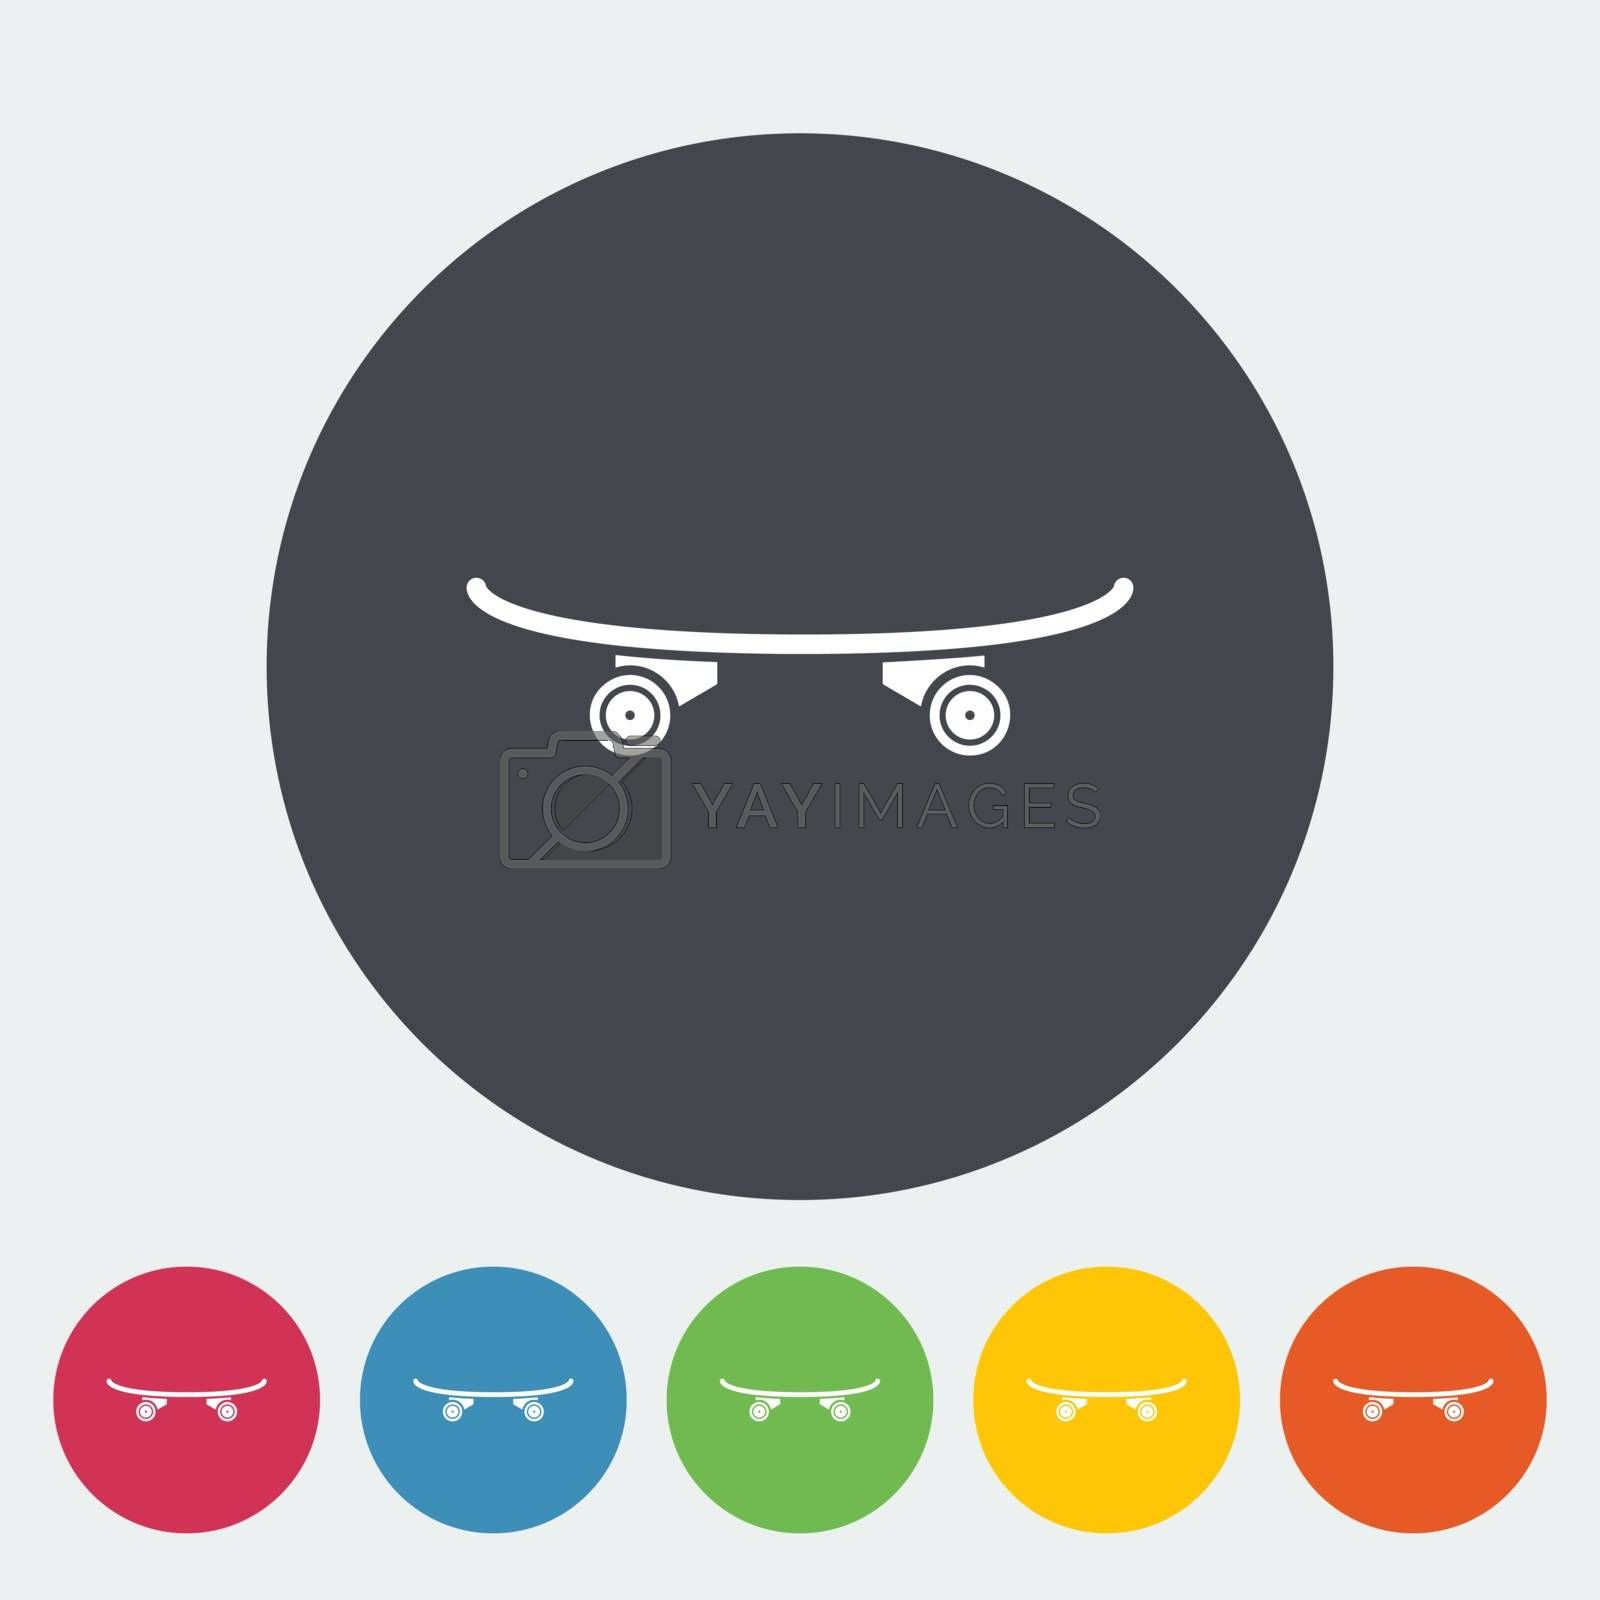 Skateboard icon. Flat vector related icon for web and mobile applications. It can be used as - logo, pictogram, icon, infographic element. Vector Illustration.